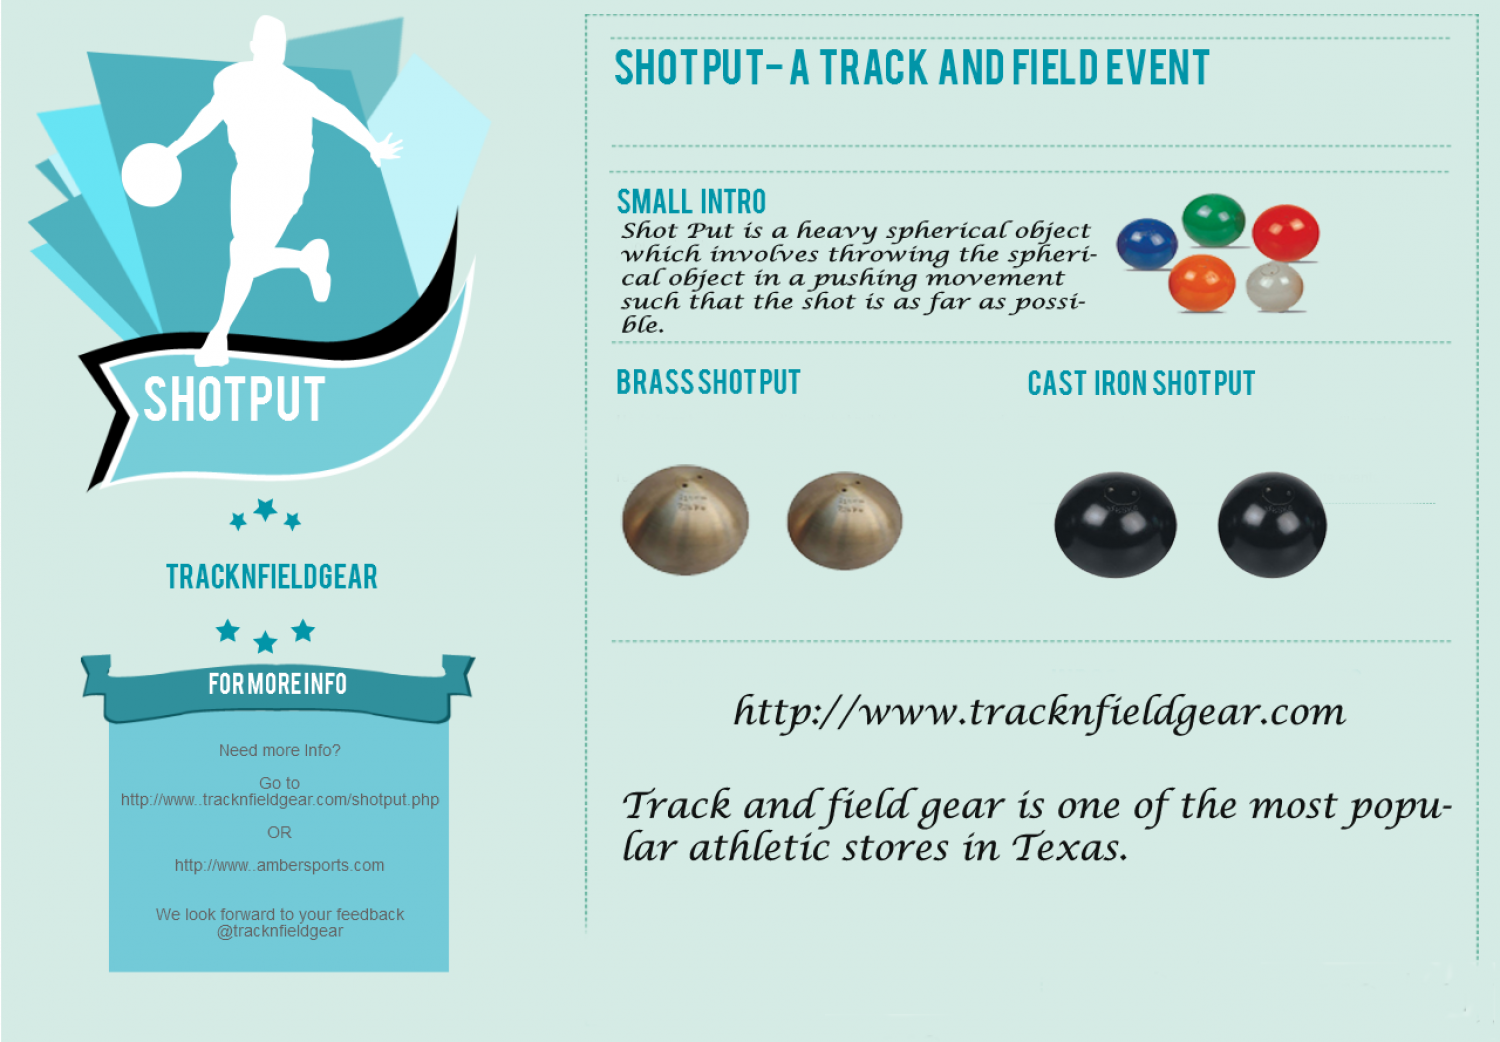 Types of Shot Put from Tracknfieldgear Infographic